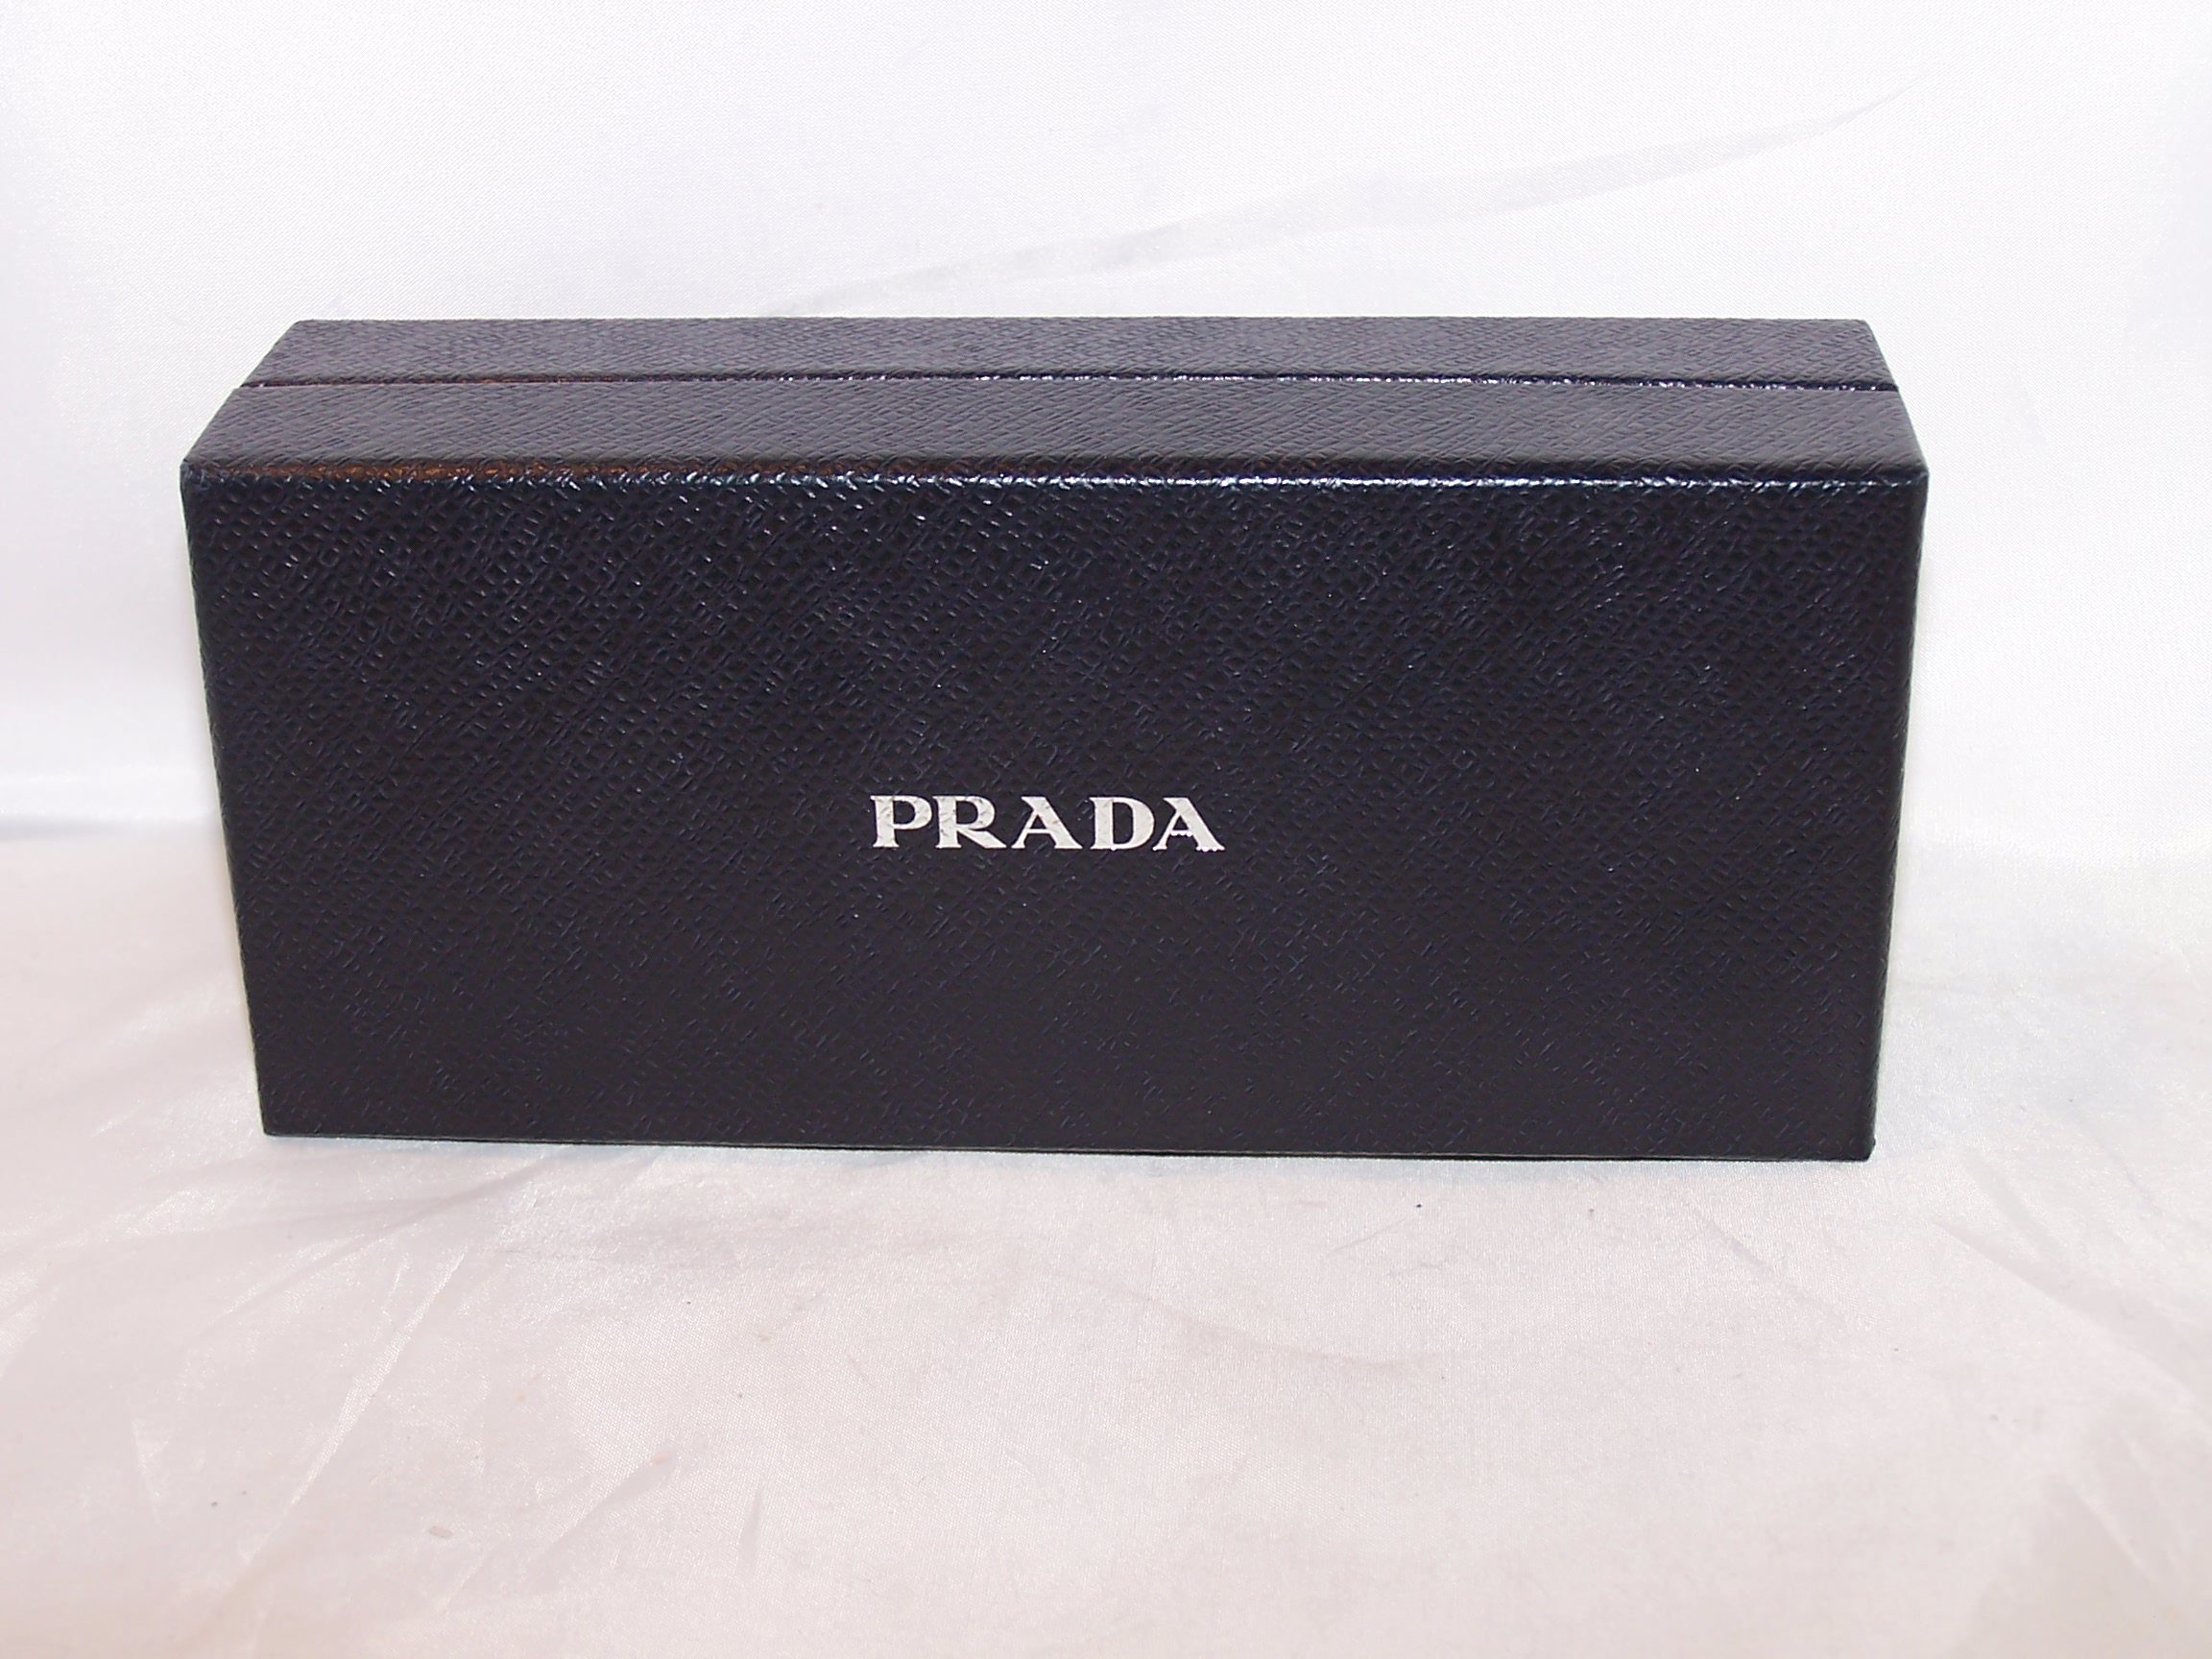 Prada Box, Black w Silver, Rectangular